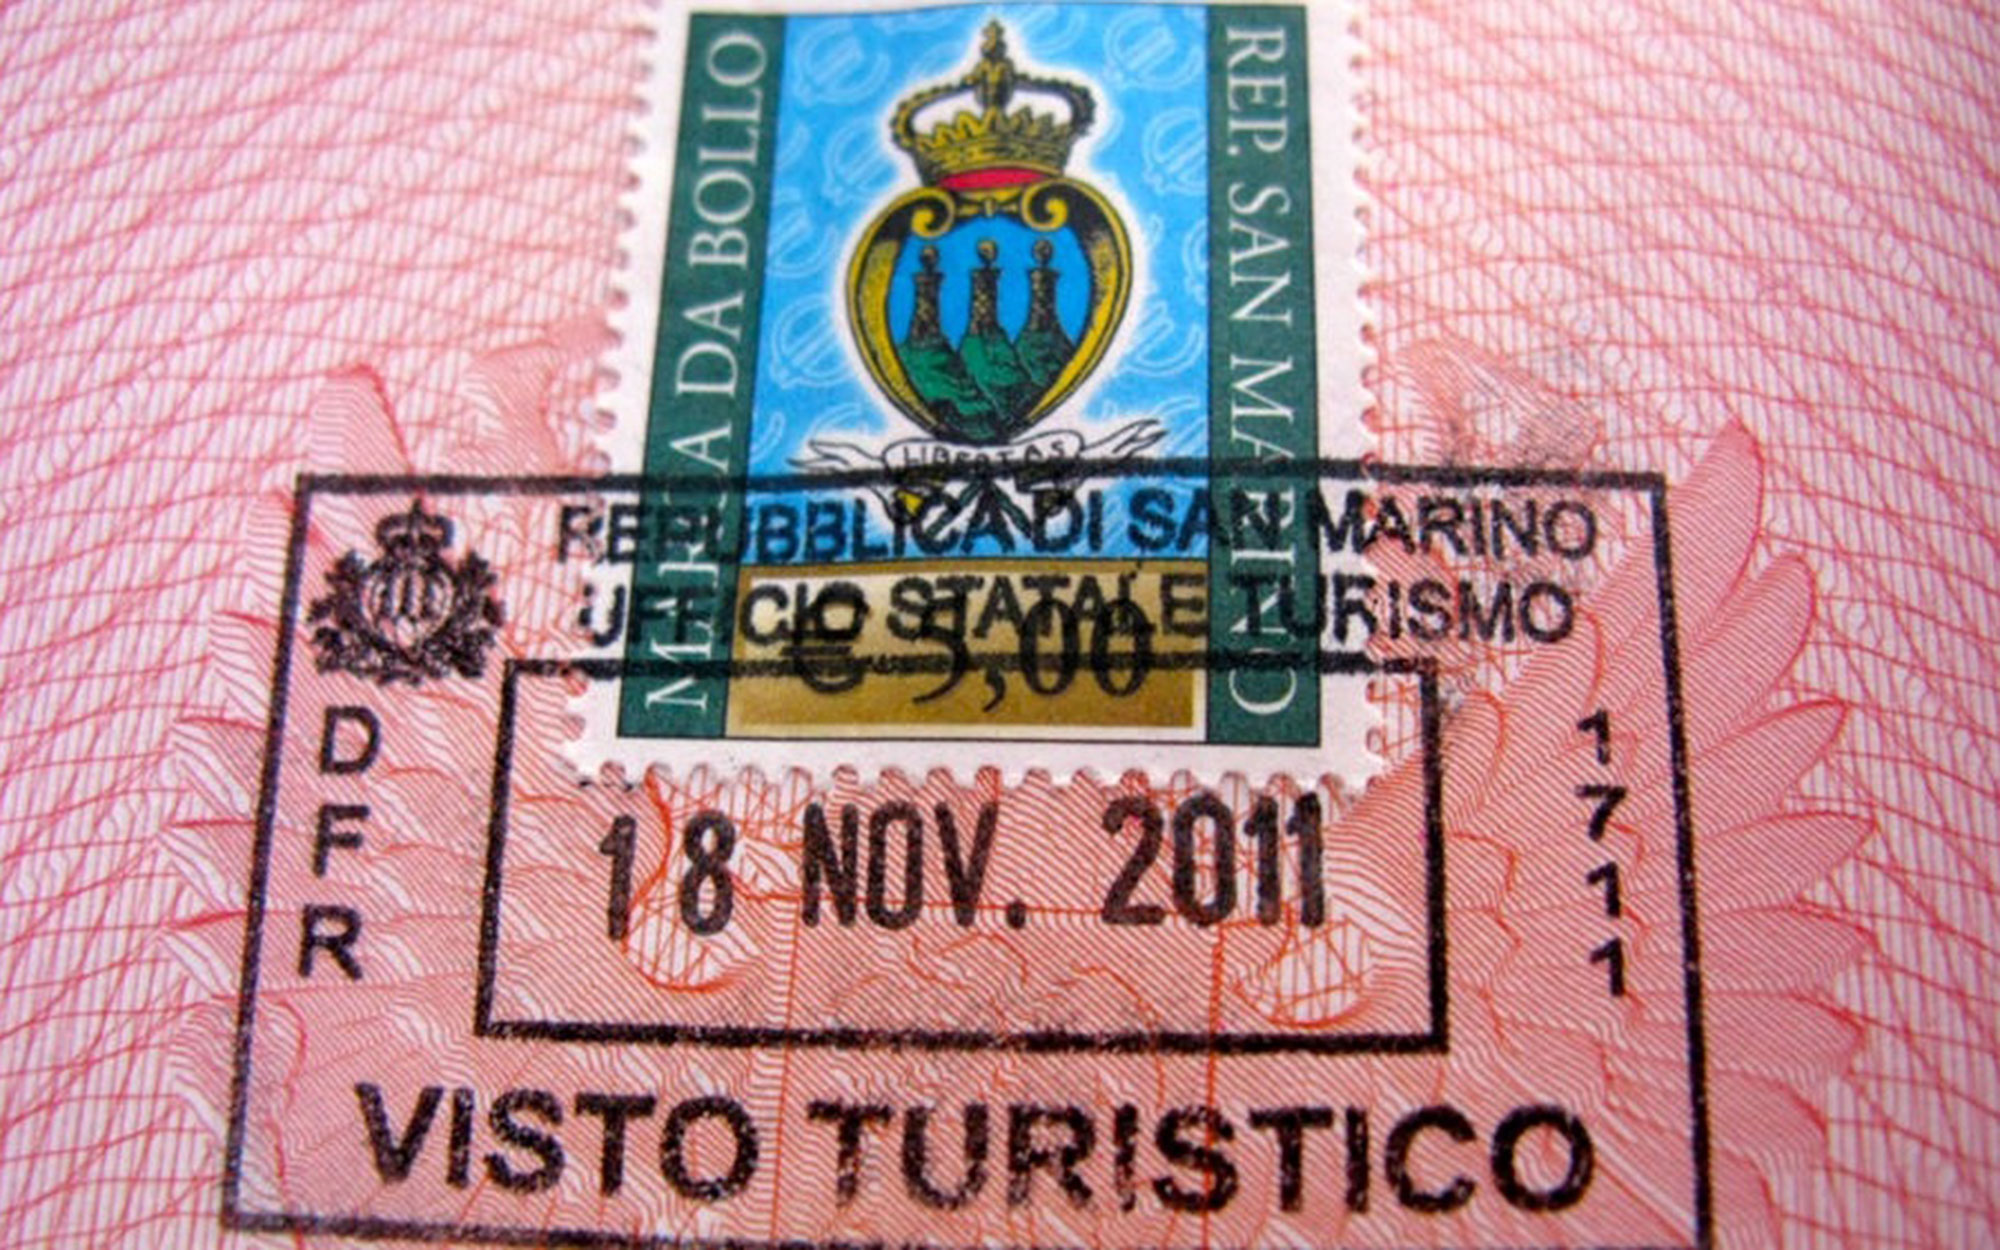 10 Coolest Passport Stamps in the World: Republic of San Marino